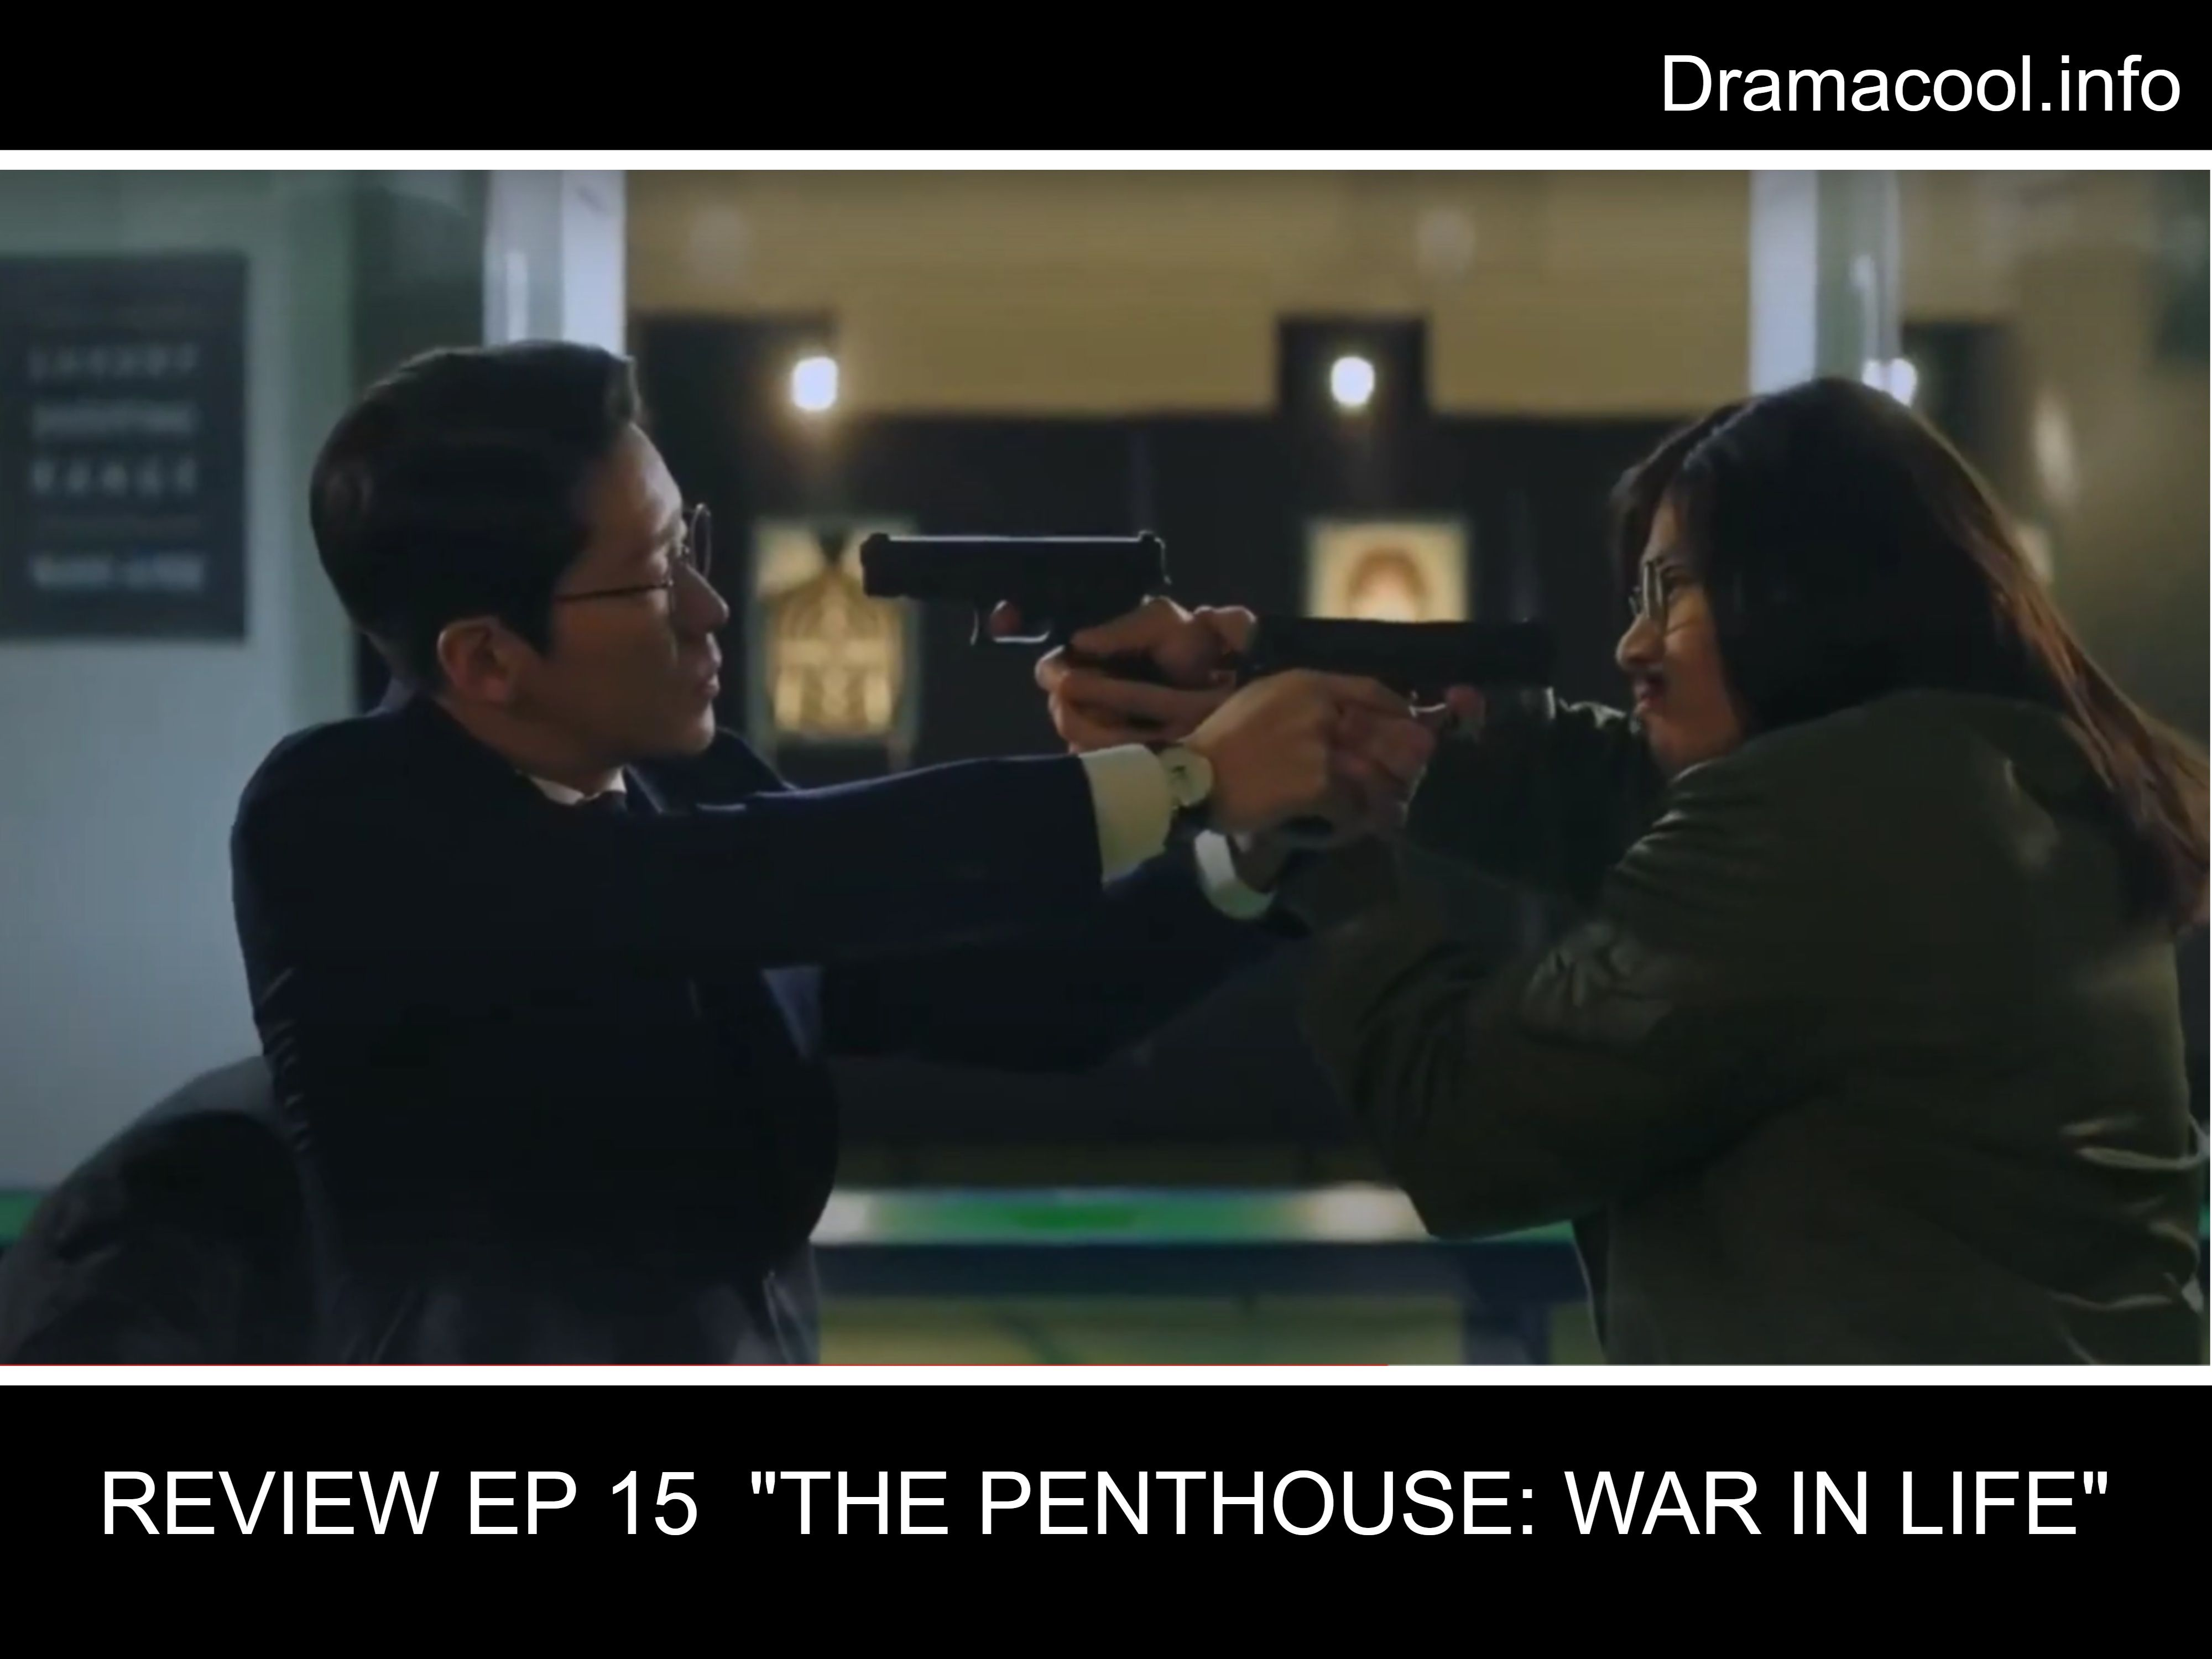 REVIEW EP 15